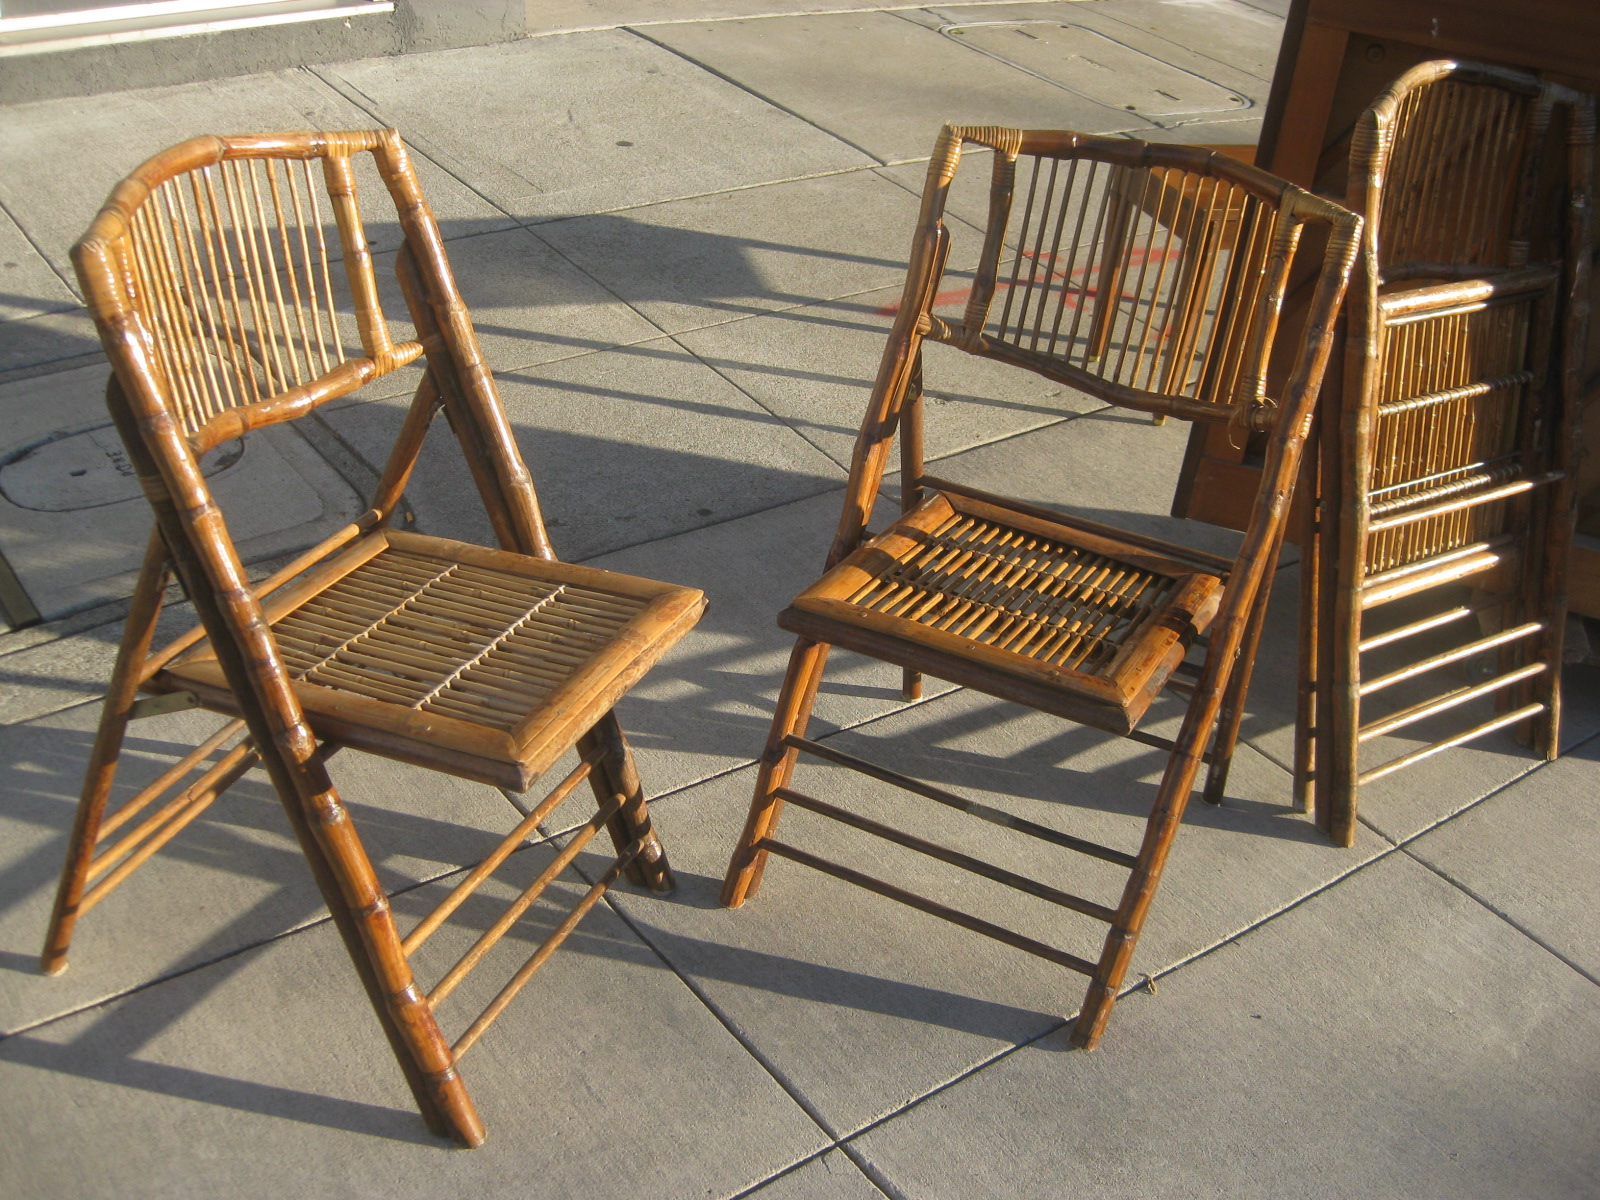 Folding Wicker Chairs Ikea Easy Chair Covers Uhuru Furniture And Collectibles Sold 3